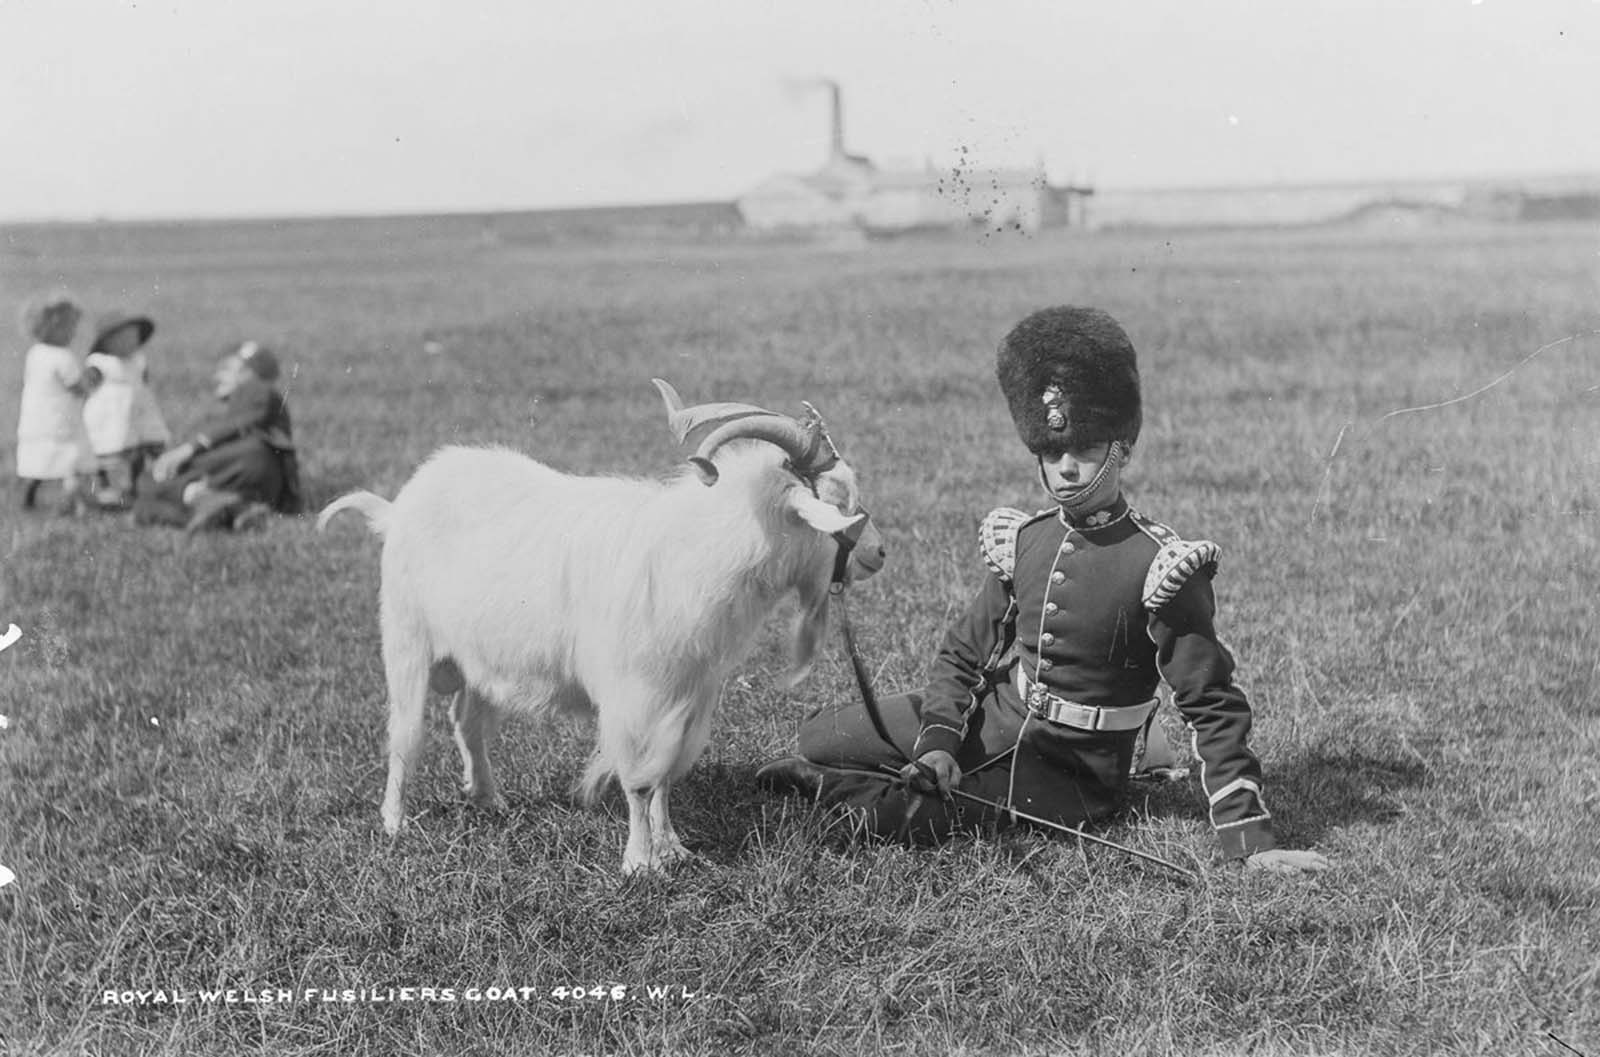 A Royal Welsh Fusilier with the Regimental Goat, and his strap-on crest. 1887.